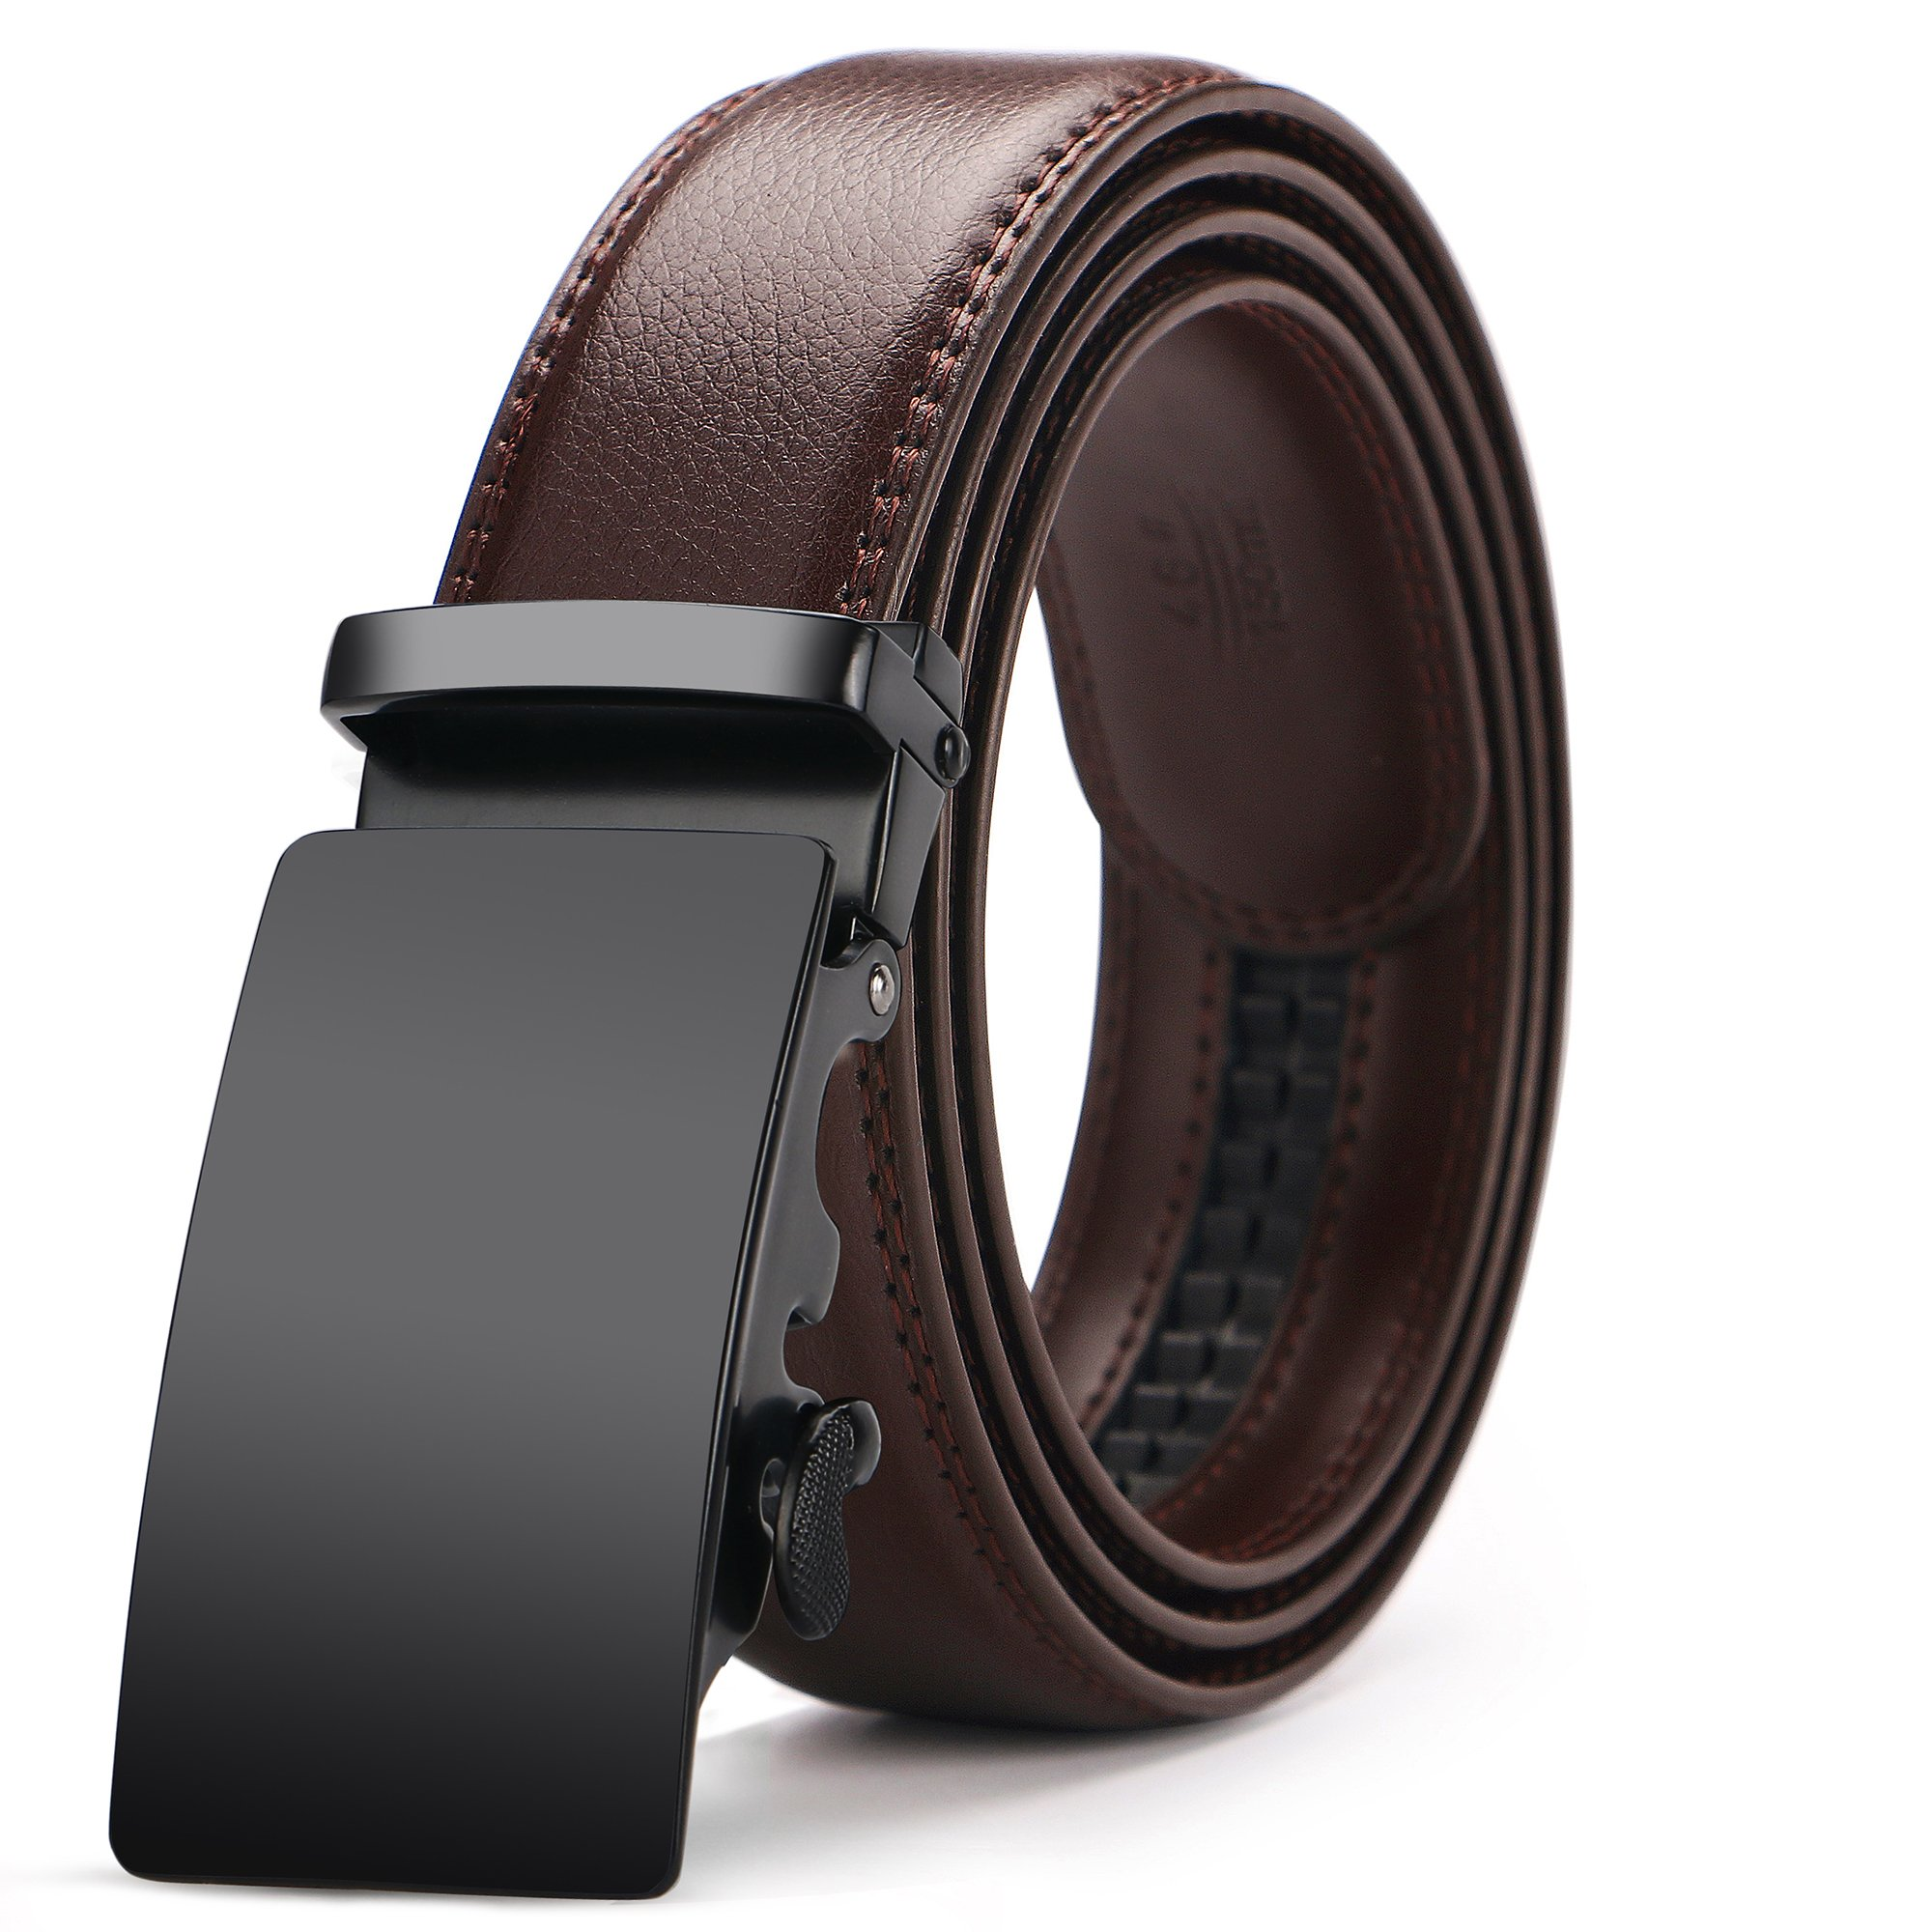 Gifny Men's Automatic Buckle Ratchet Leather Dress Belt 35mm Wider 1 3/8'' for from 22'' to 44'' Waist with Gift Box - Brown